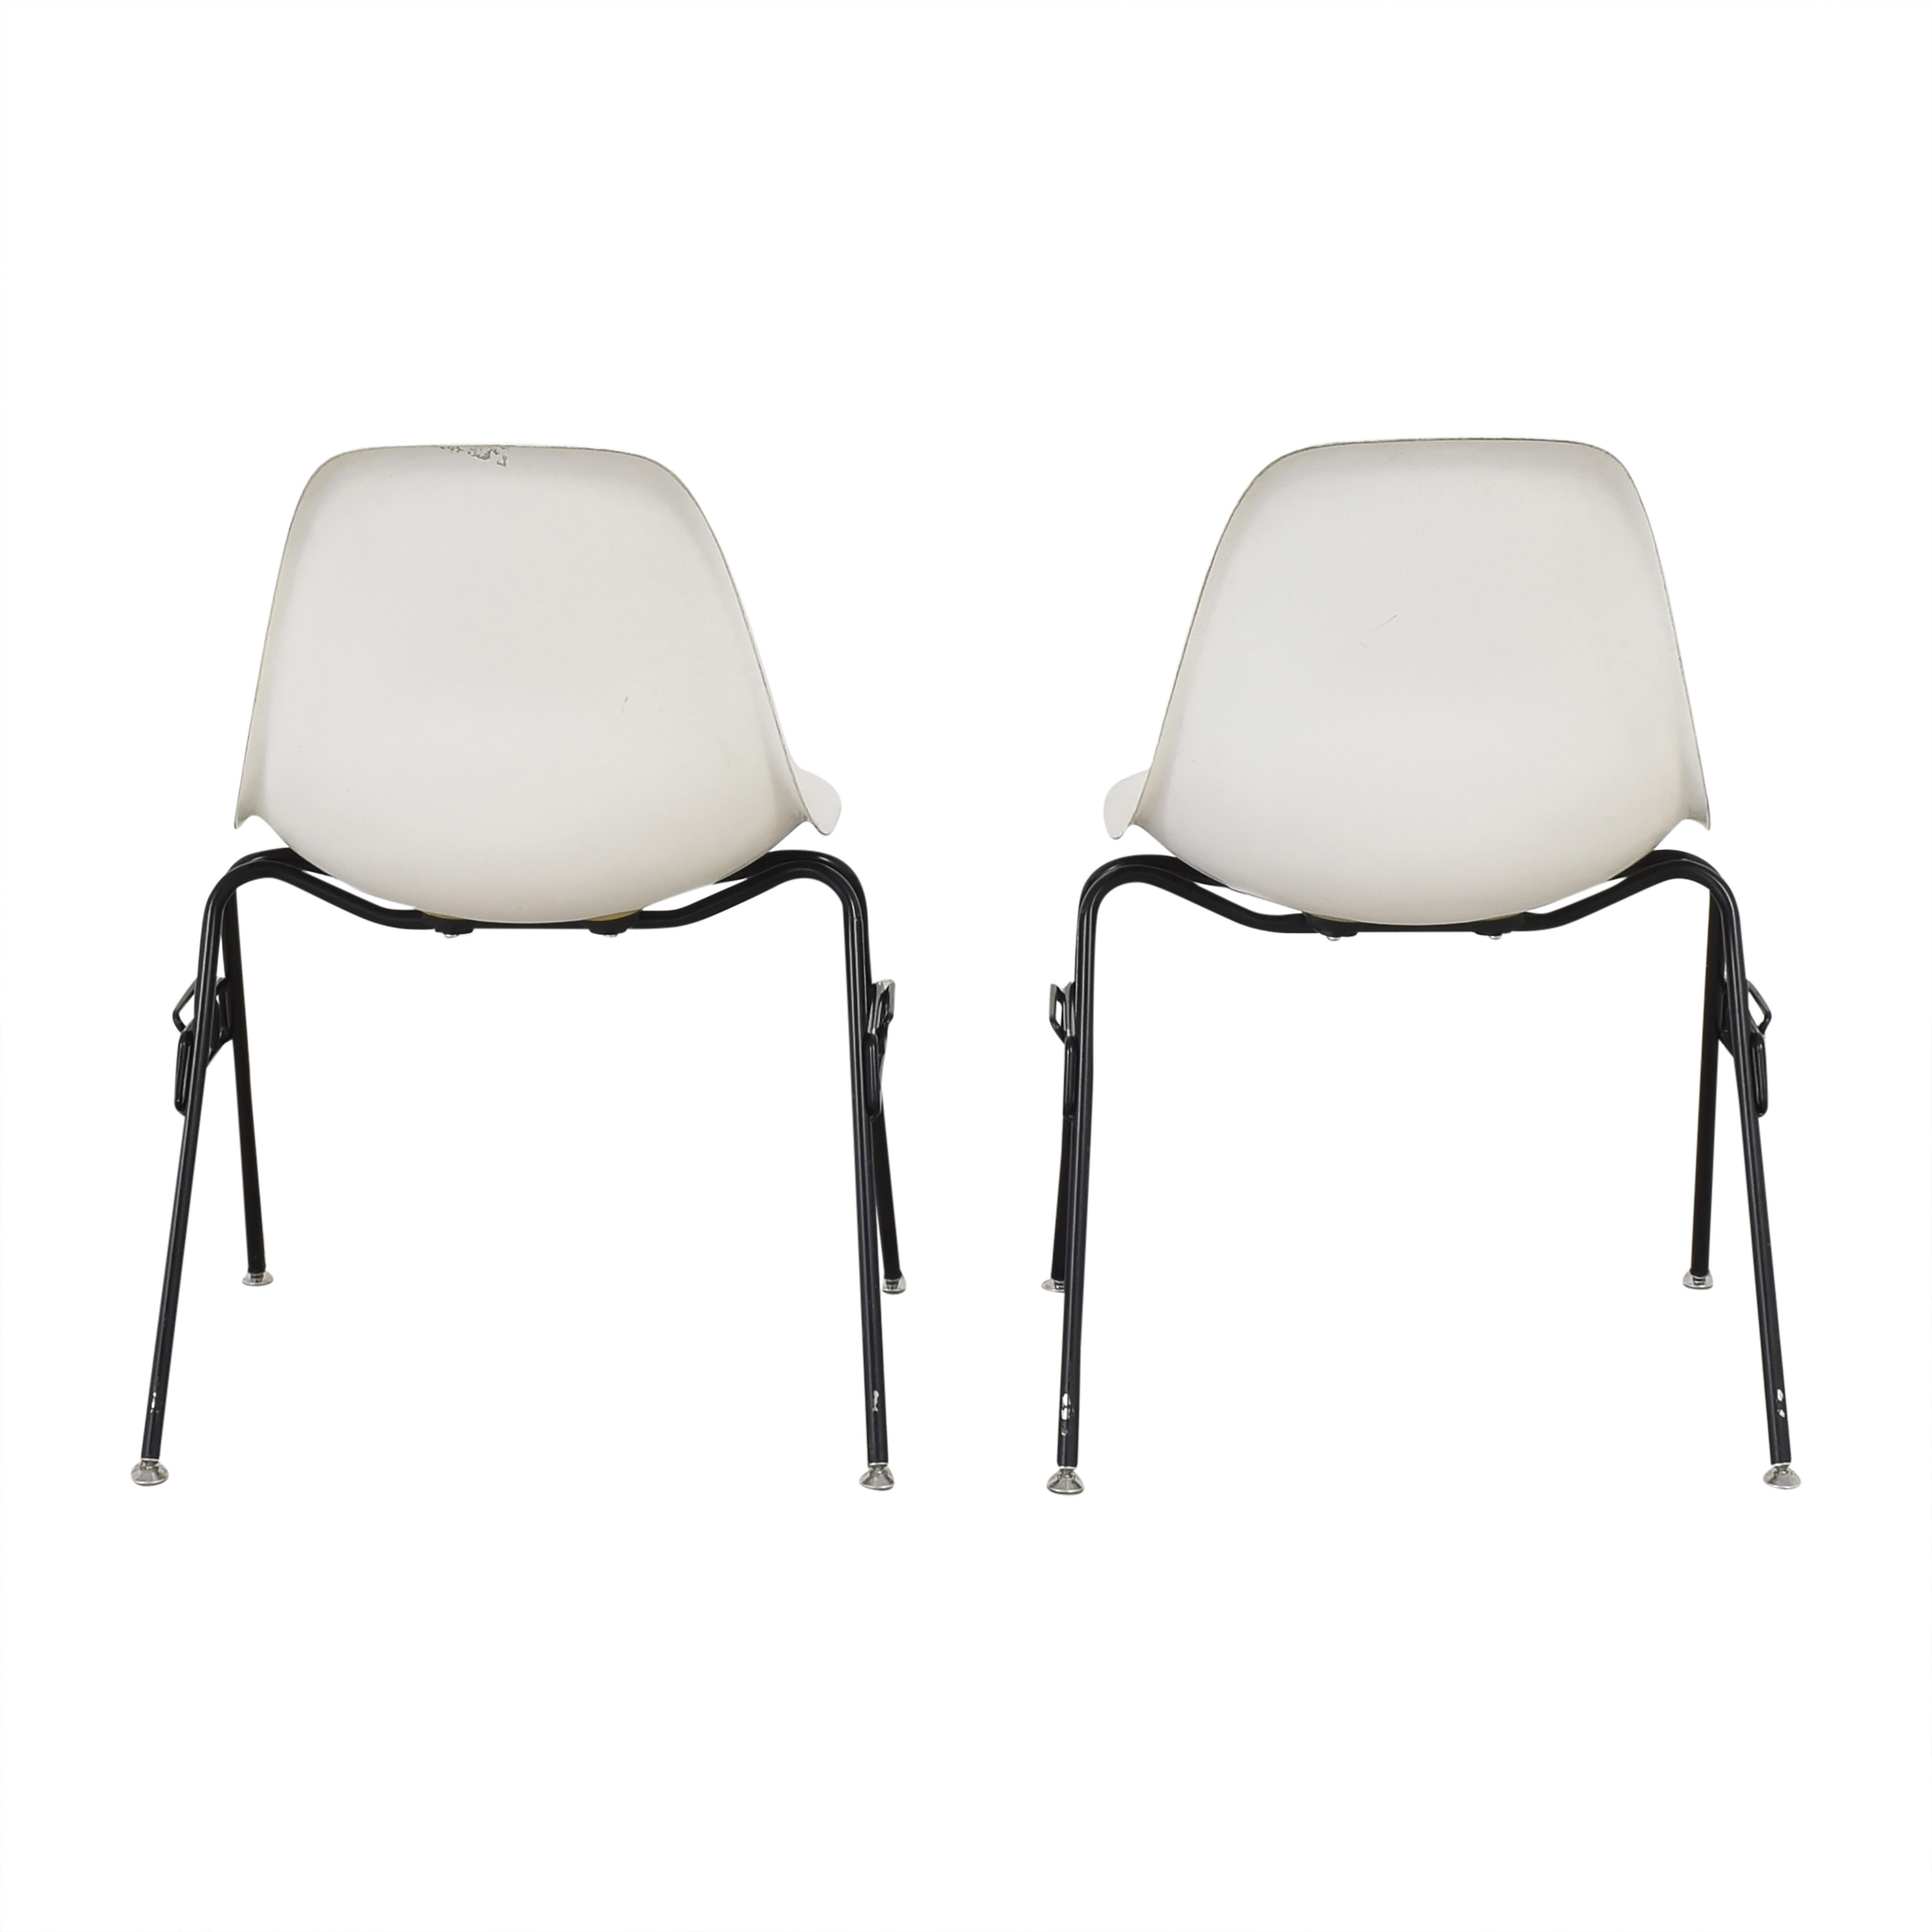 Modernica Modernica Case Study Furniture Side Shell Stacking Chairs used